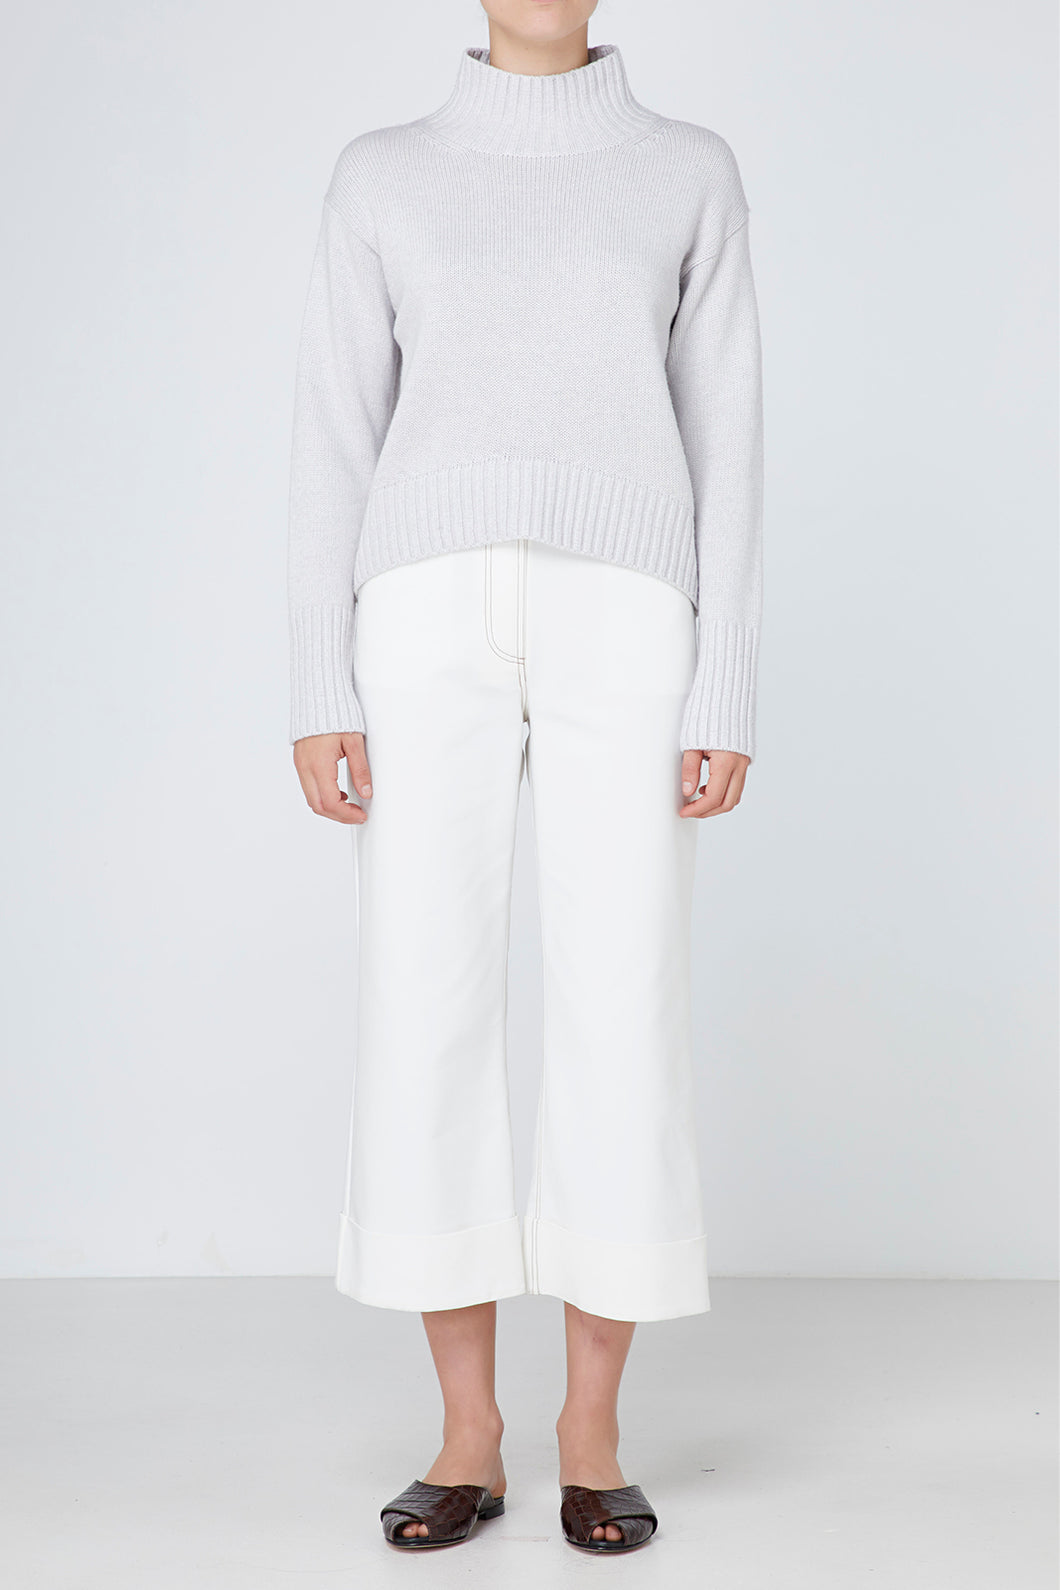 Elka Collective Amaretta knit, free shipping, Sustainable knitwear, Ethical knitwear, Soft cotton wool yarn knitwear, laid back luxe knitwear, Sustainable Australian Clothing Brand, Sustainable knitwear on sale